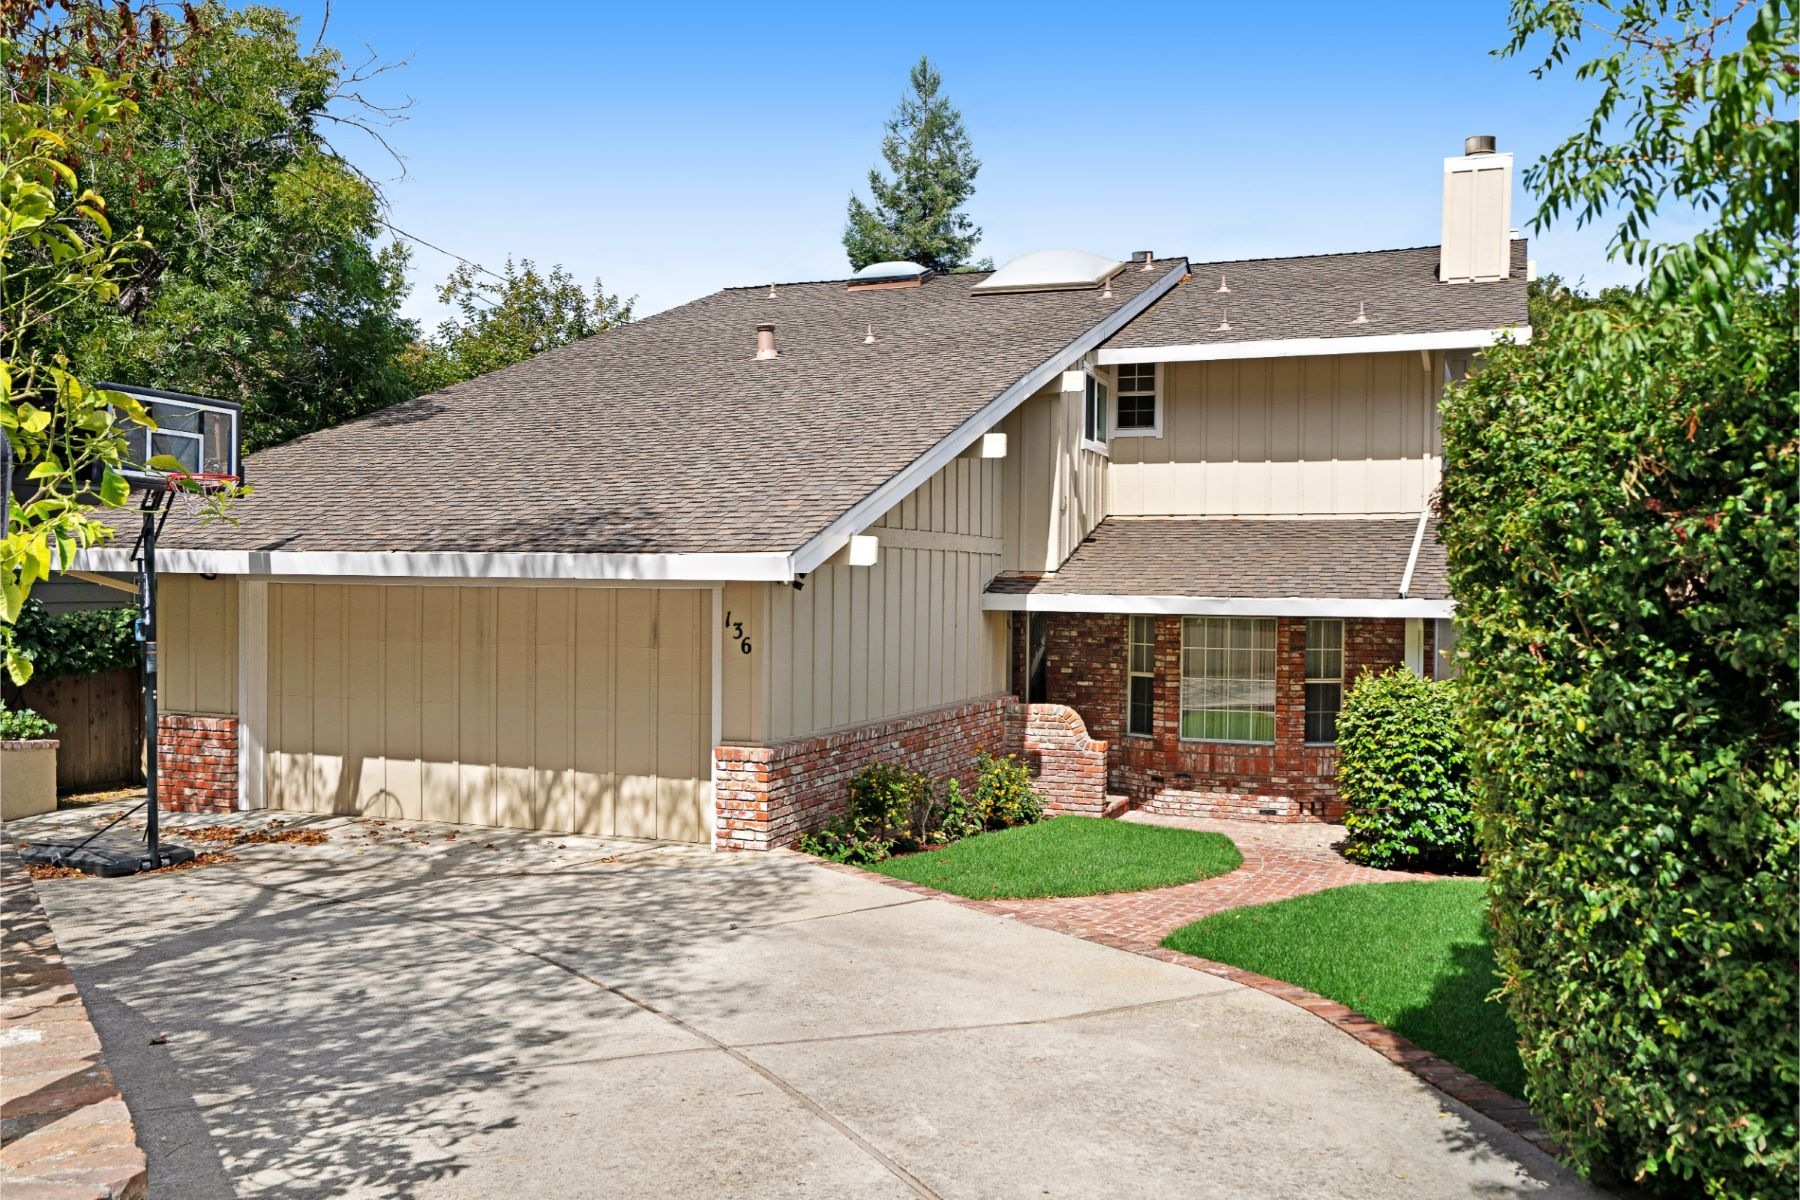 Single Family Home for Active at Live The Dream In Devonshire Canyon 136 Dale Avenue San Carlos, California 94070 United States